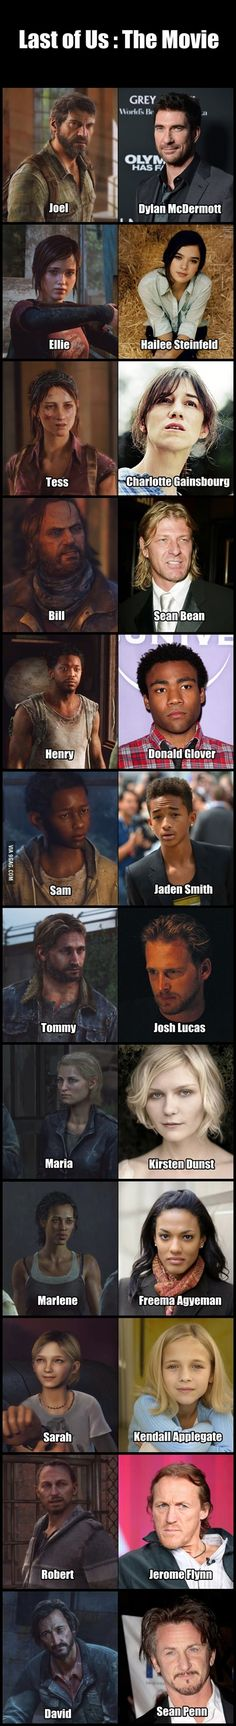 I could live without Jaden Smith, but otherwise this is a pretty good cast!